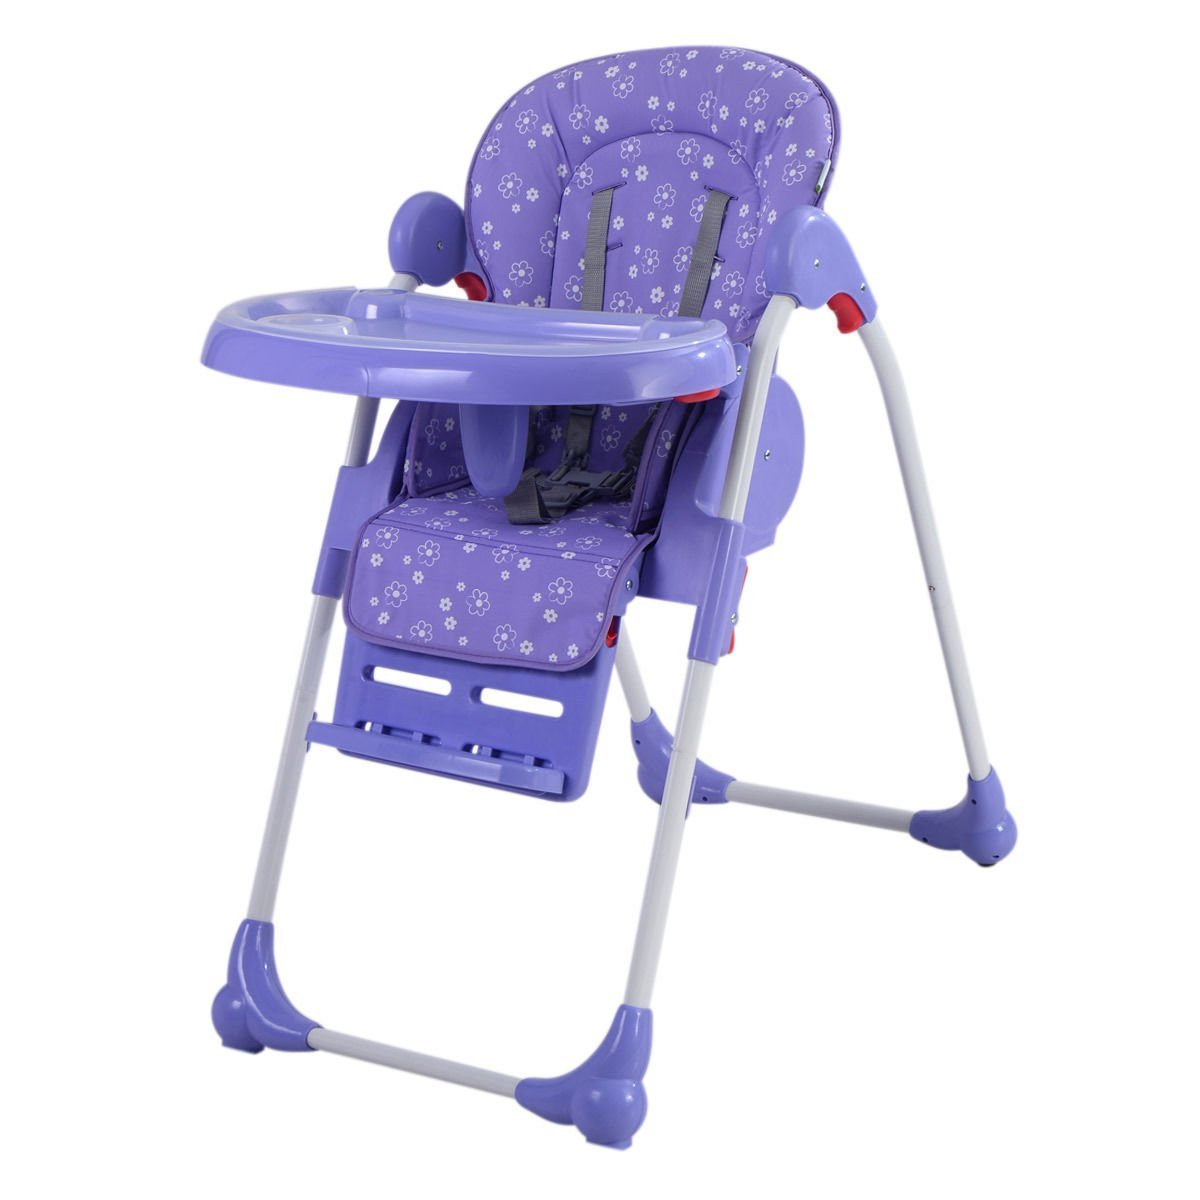 7eb46f3642d5 Amazon.com   Costzon Adjustable Baby High Chair Infant Toddler Feeding  Booster Seat Folding (purple)   Baby